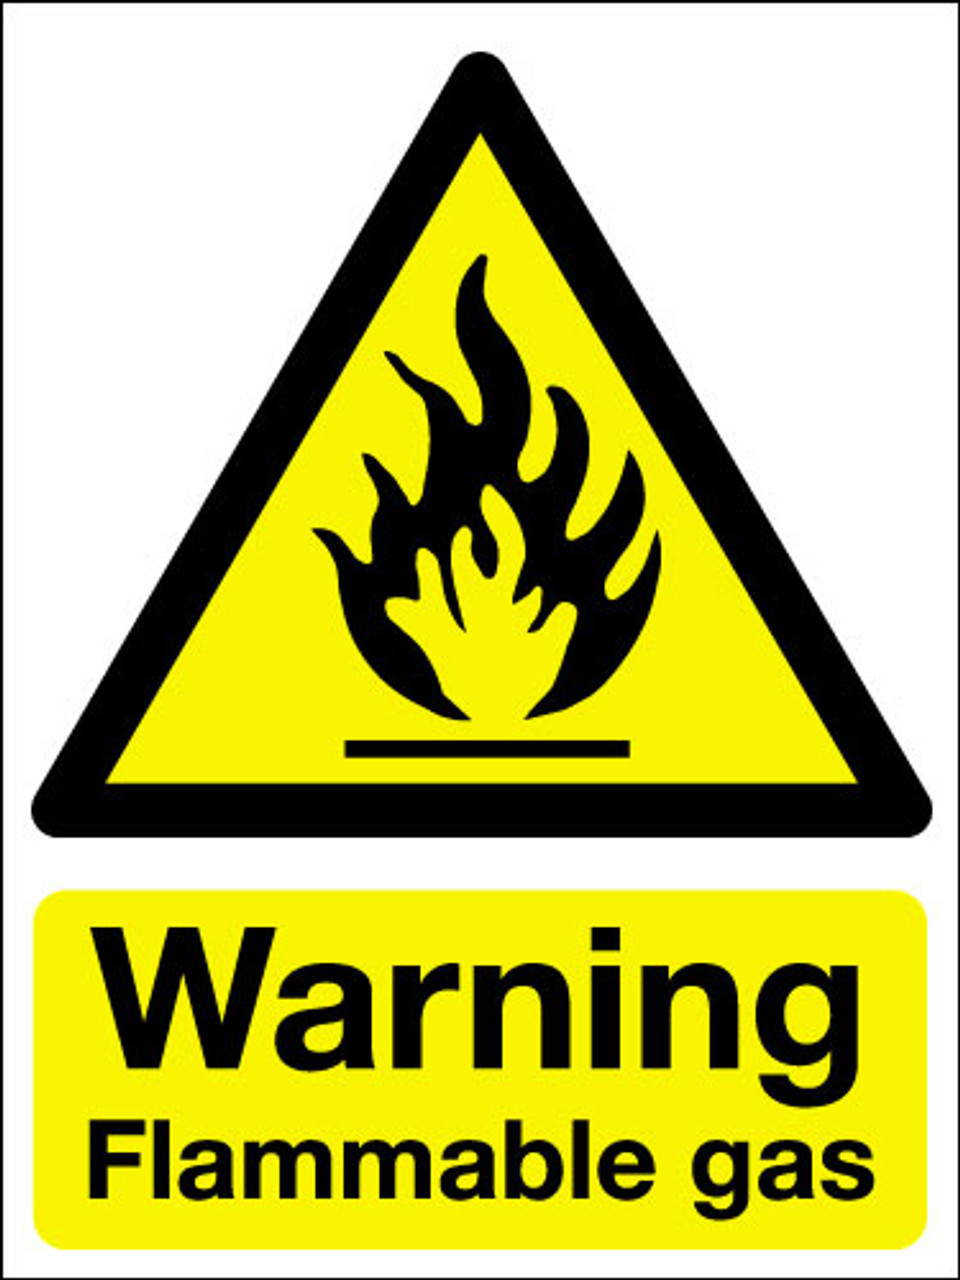 Warning flammable gas sign